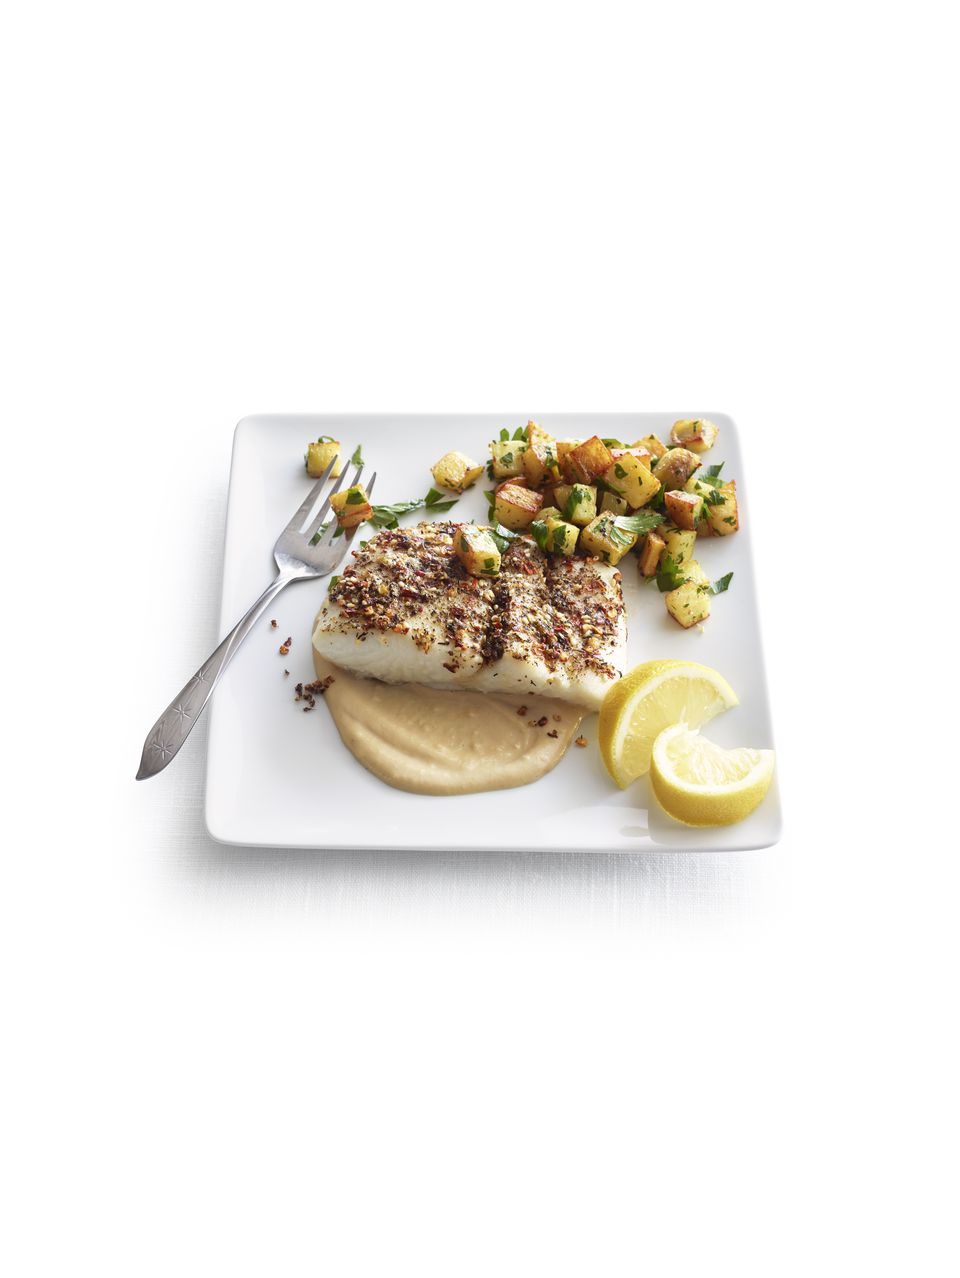 Roasted halibut with tahini sauce & diced potatoes